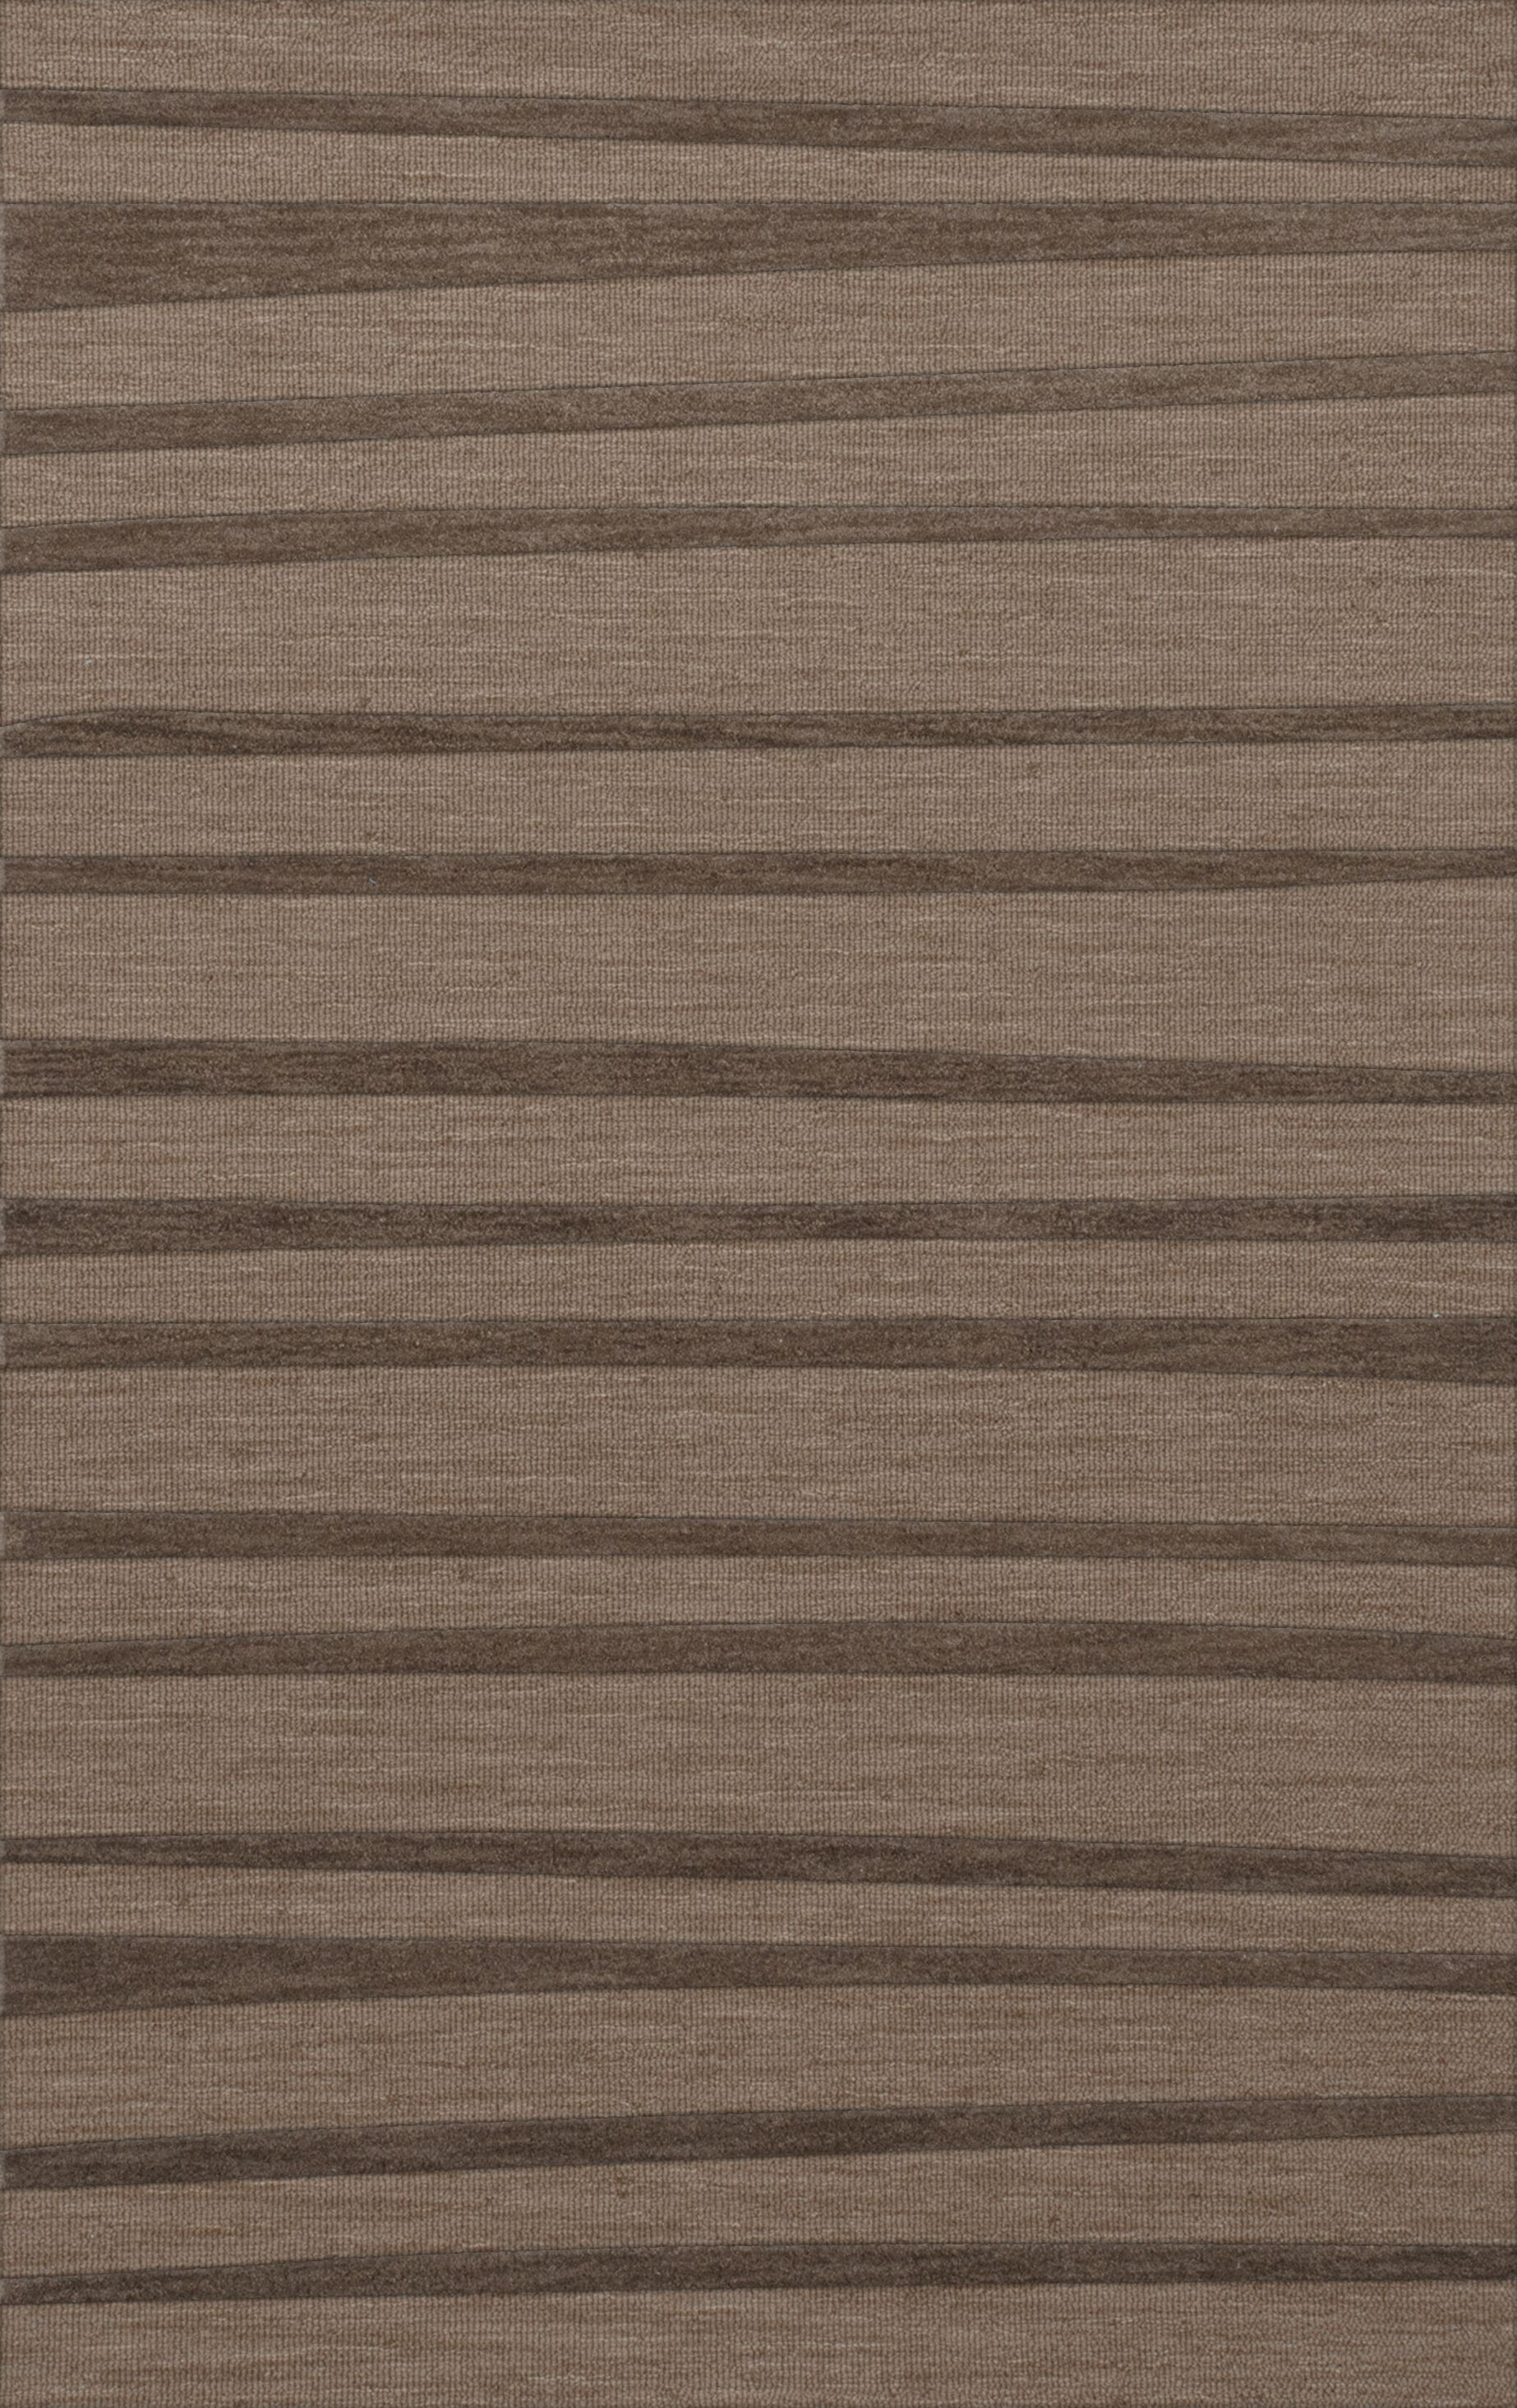 Dover Stone Area Rug Rug Size: Rectangle 8' x 10'